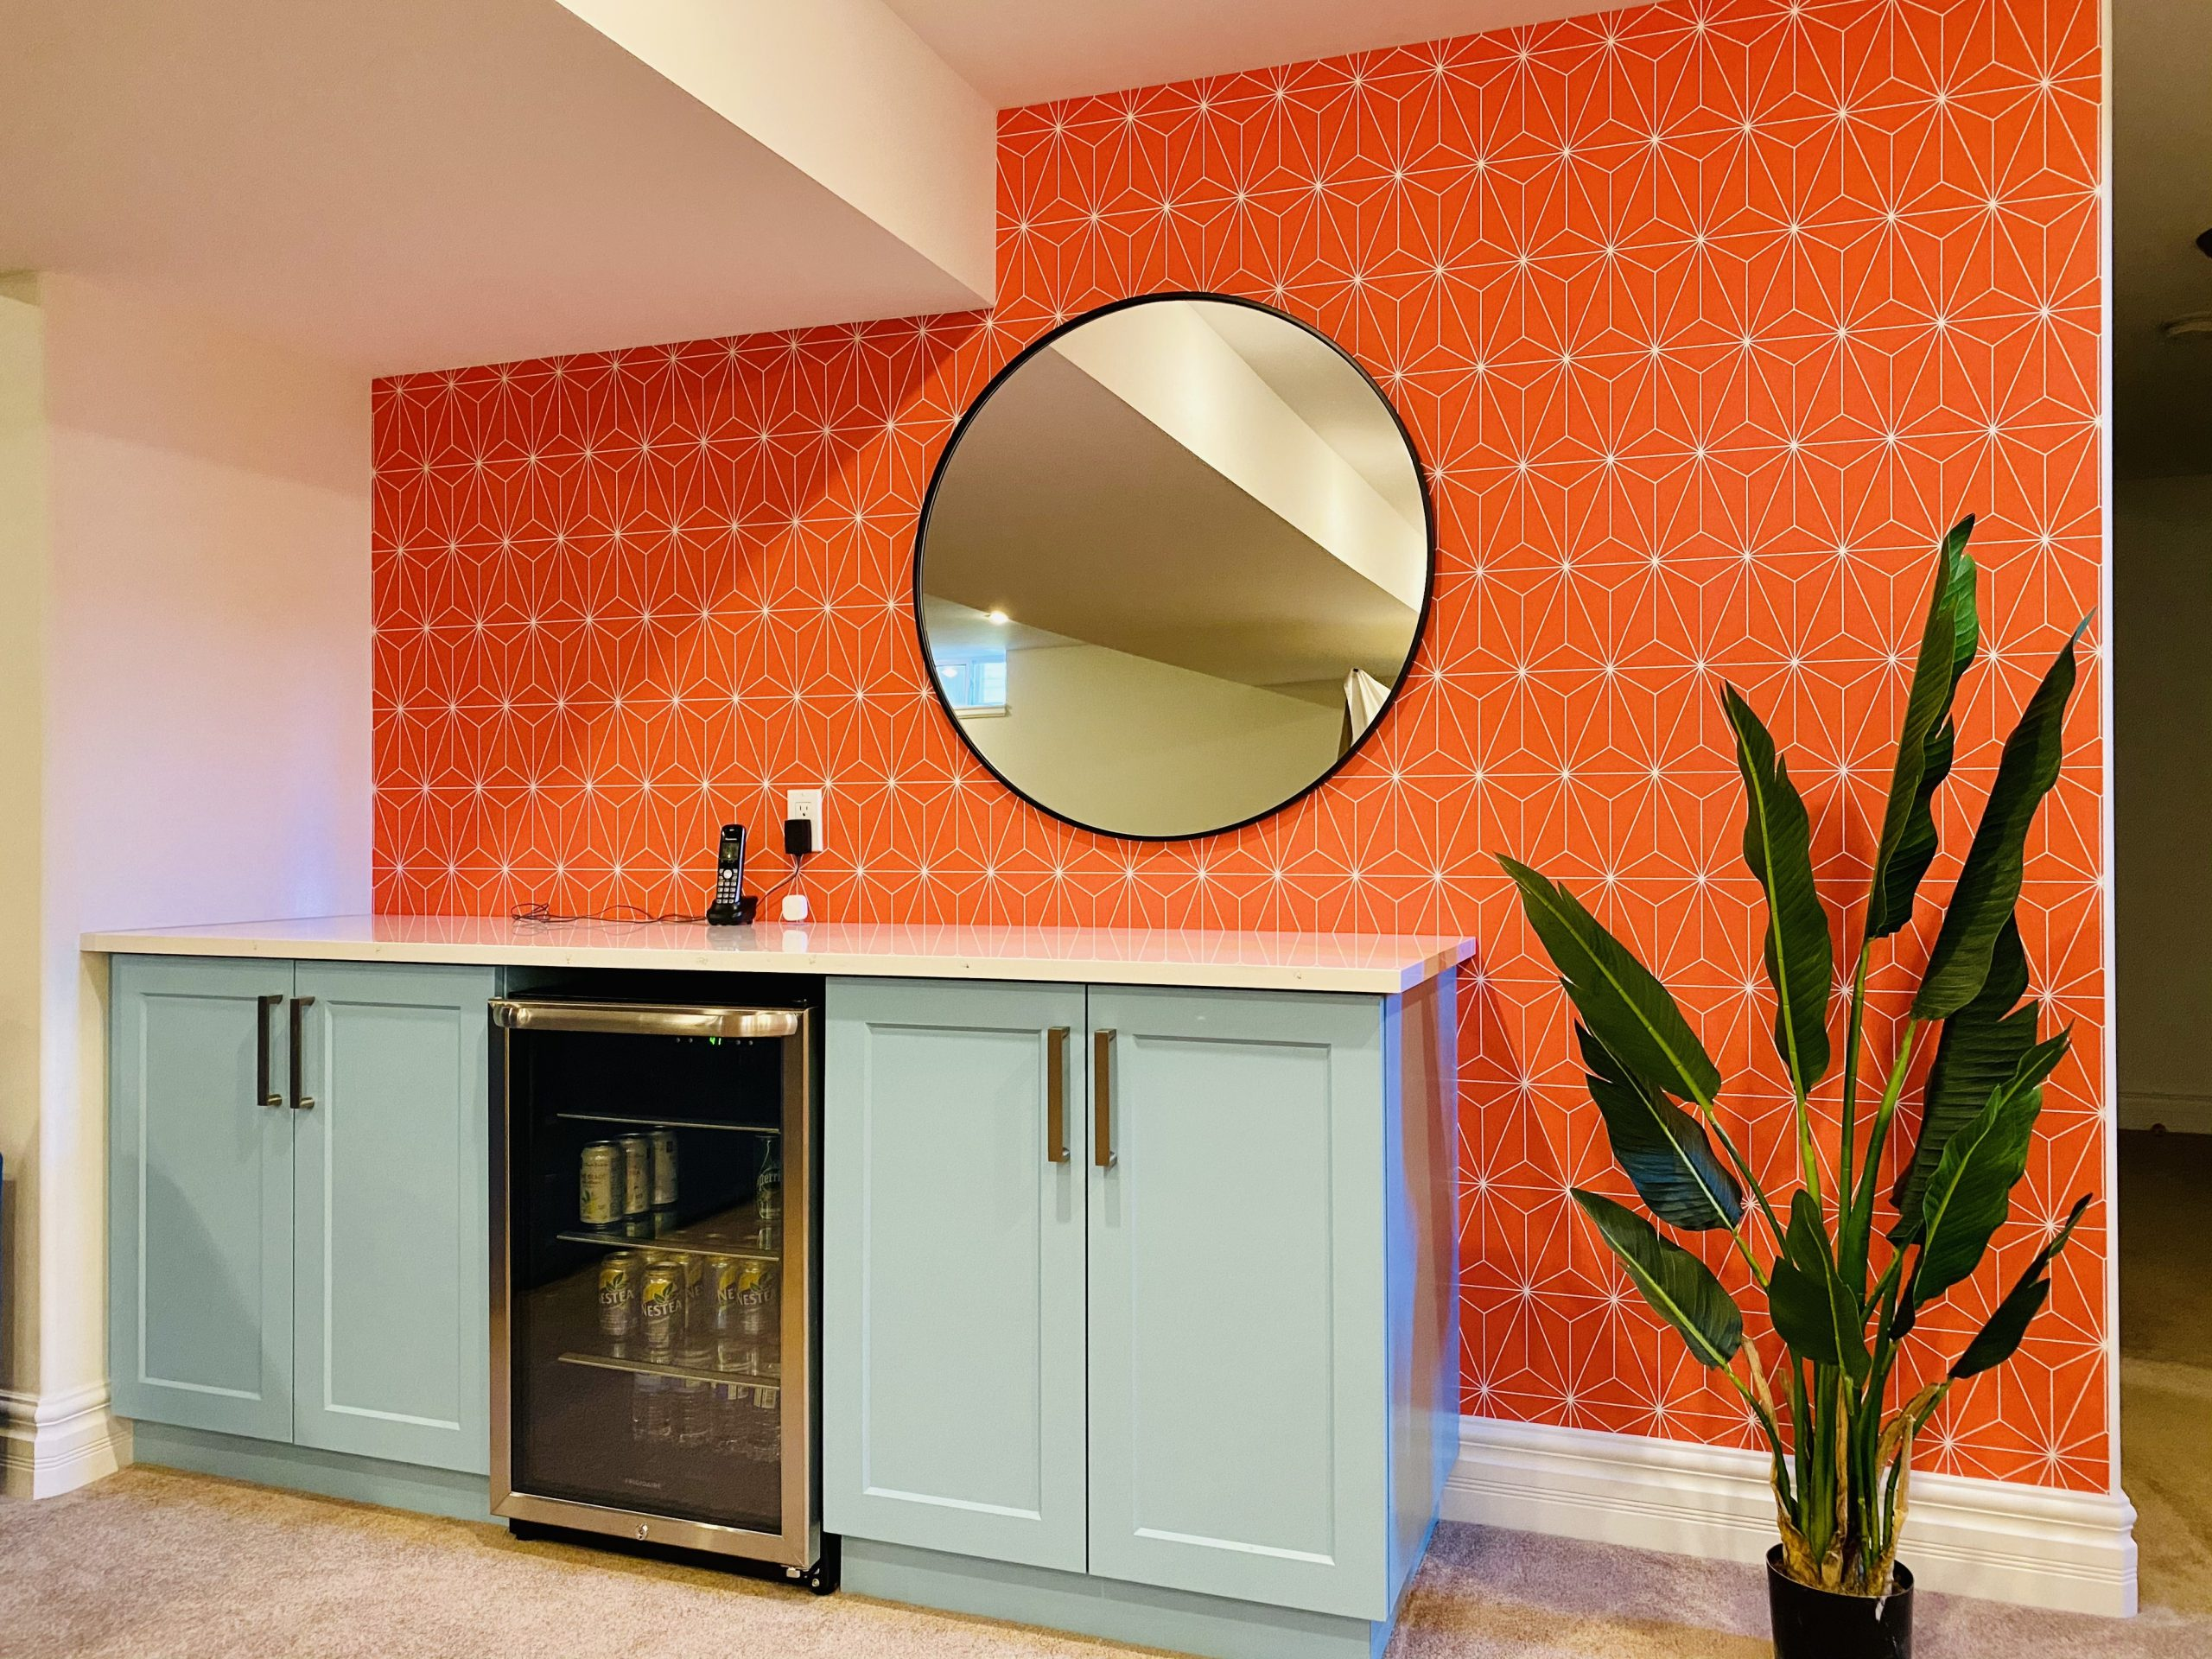 Interior designer in Windsor Ontario designs a colourful basement with custom cabinetry and wallpaper